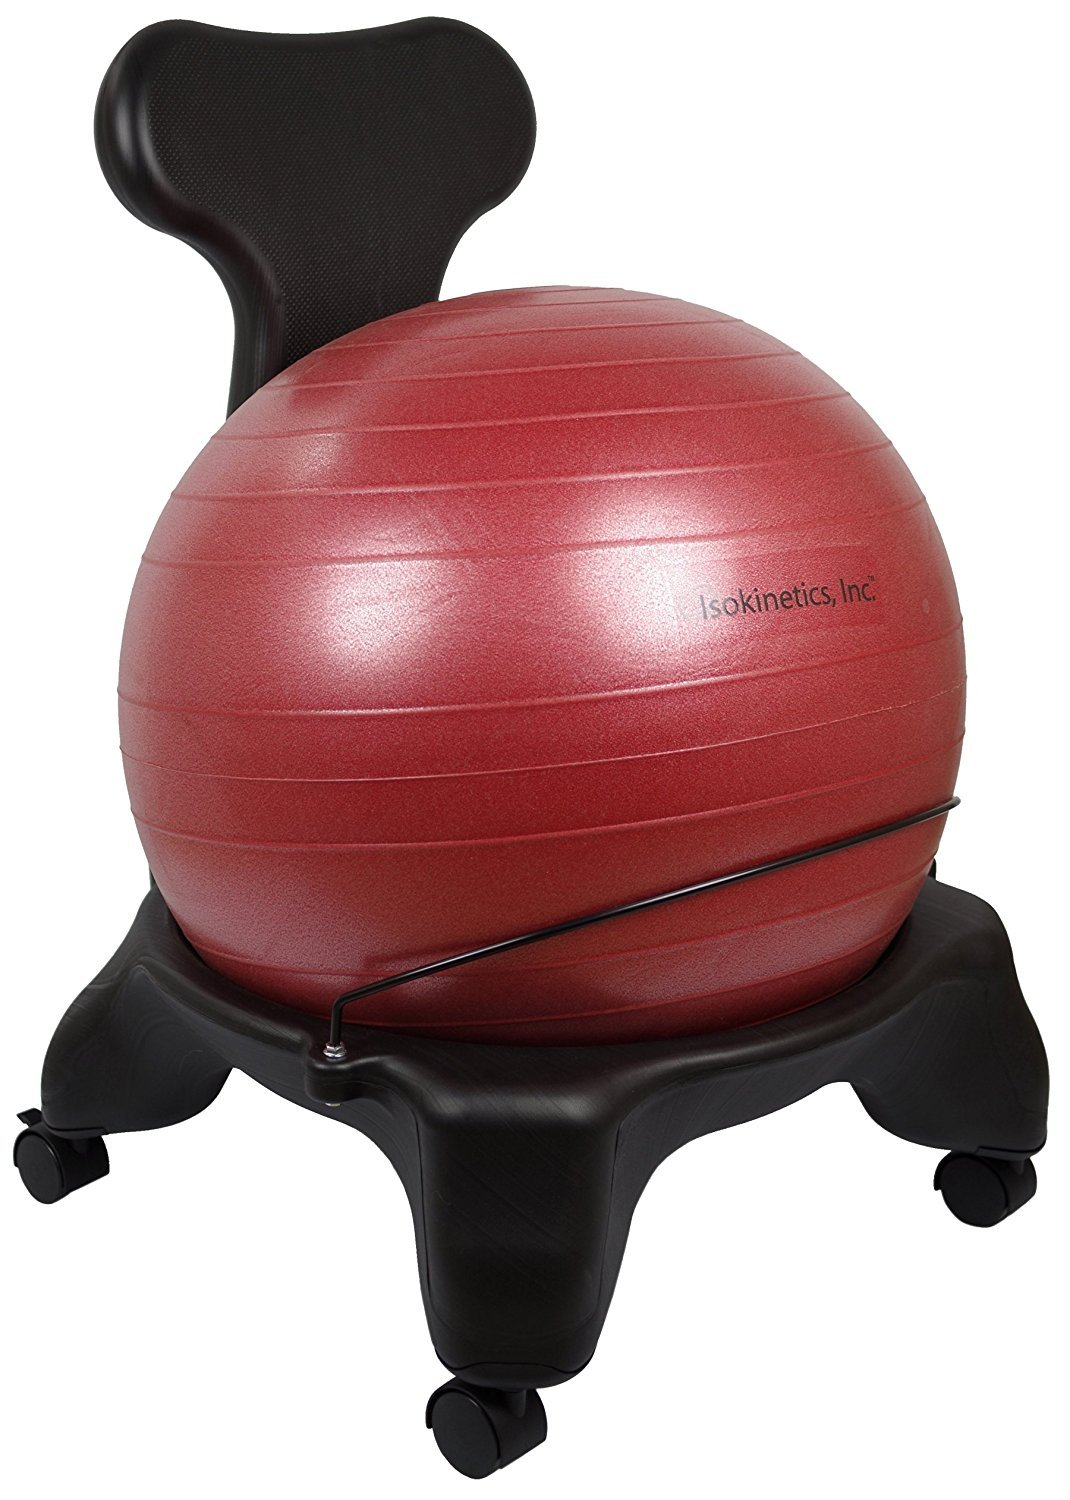 Isokinetics Inc. Balance Exercise Ball Chair - Red 52cm Ball - Standard Height Frame - Office size 60mm/2.5'' wheels - Adult Size by Isokinetics